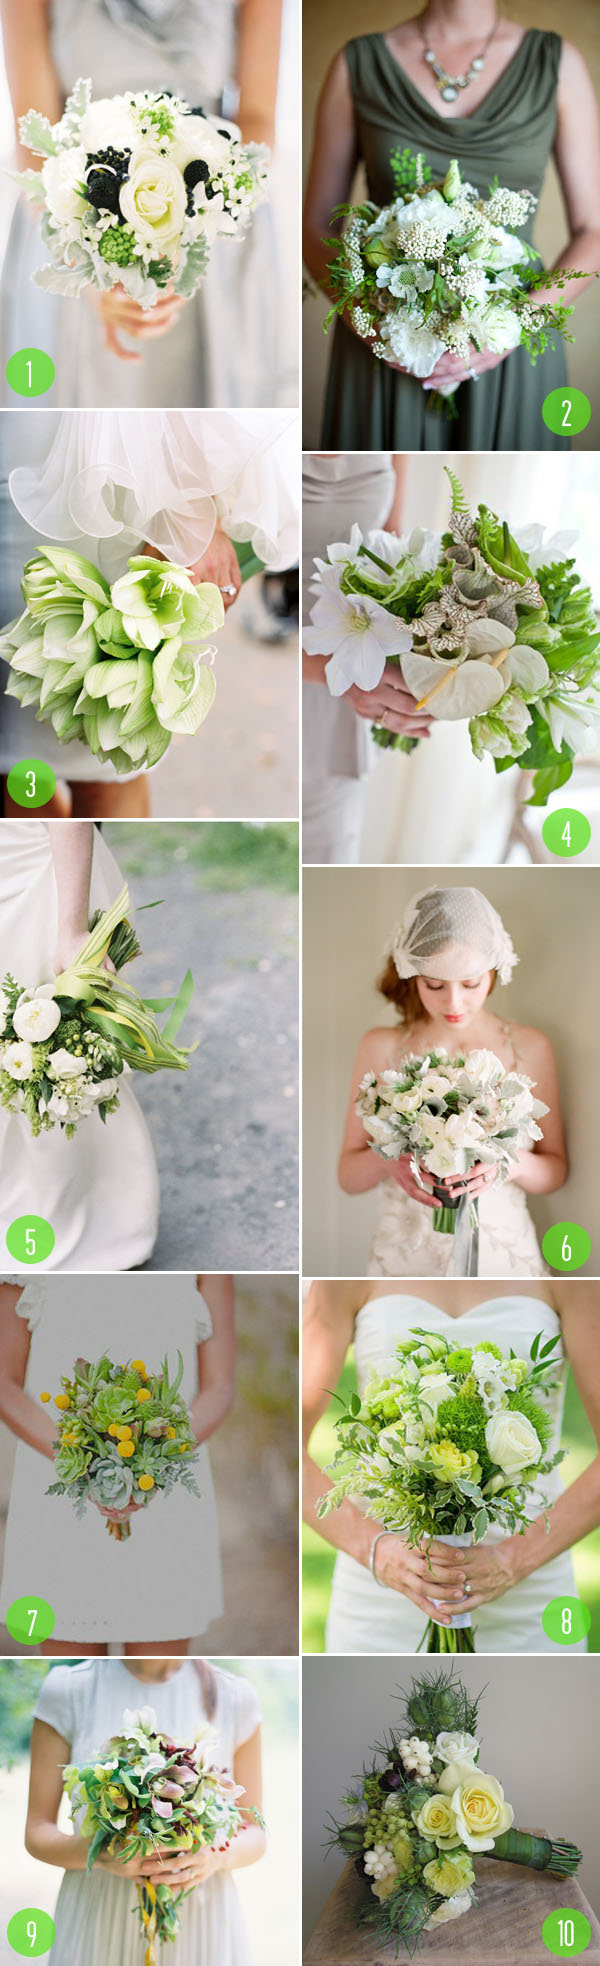 Top 10: Mostly green bouquets 3